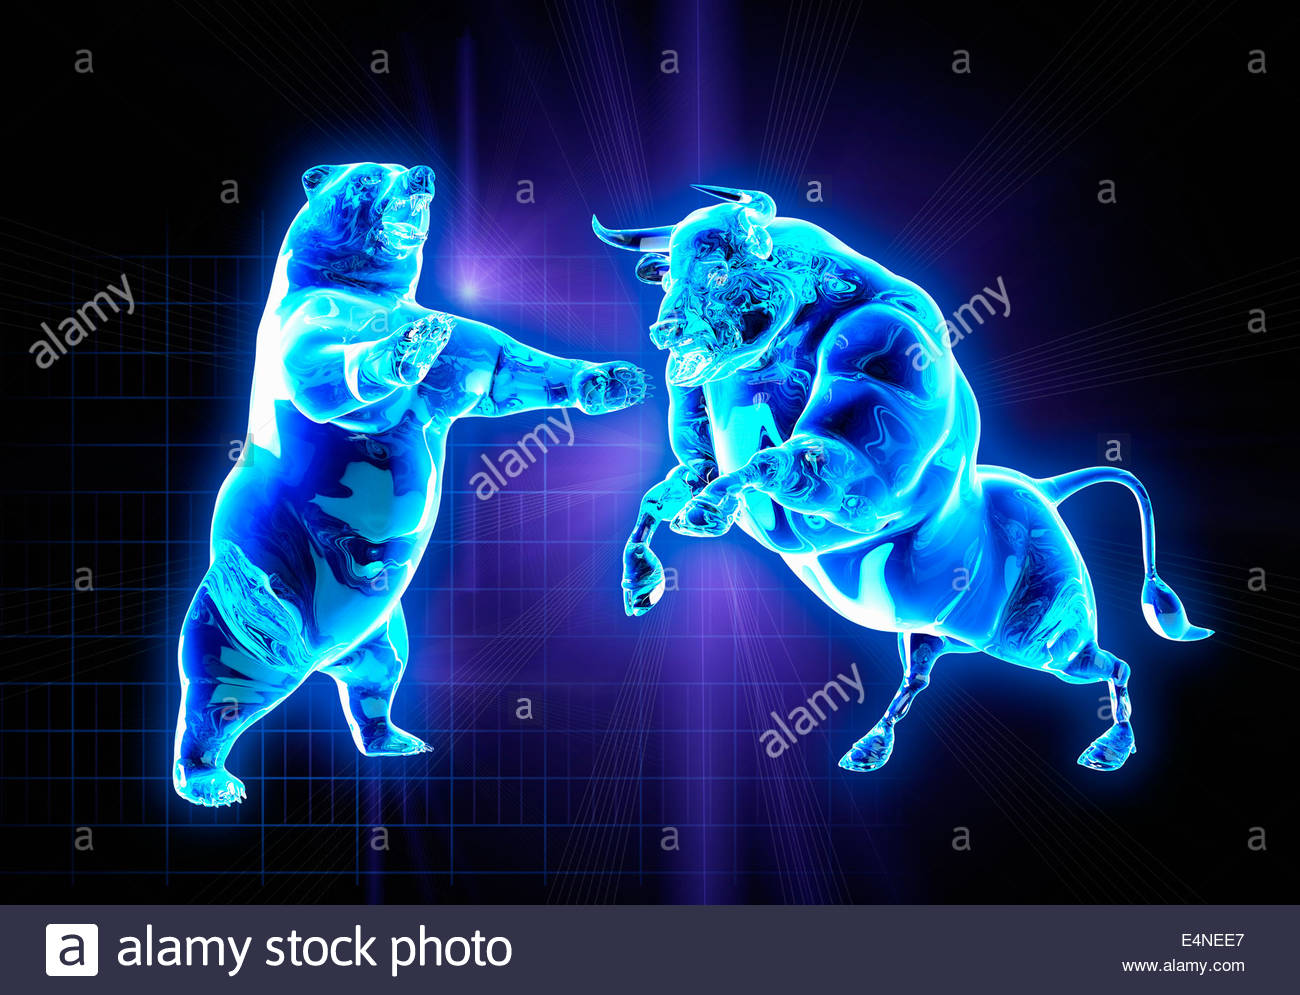 Glowing fighting bull and bear stock market symbols - Stock Image